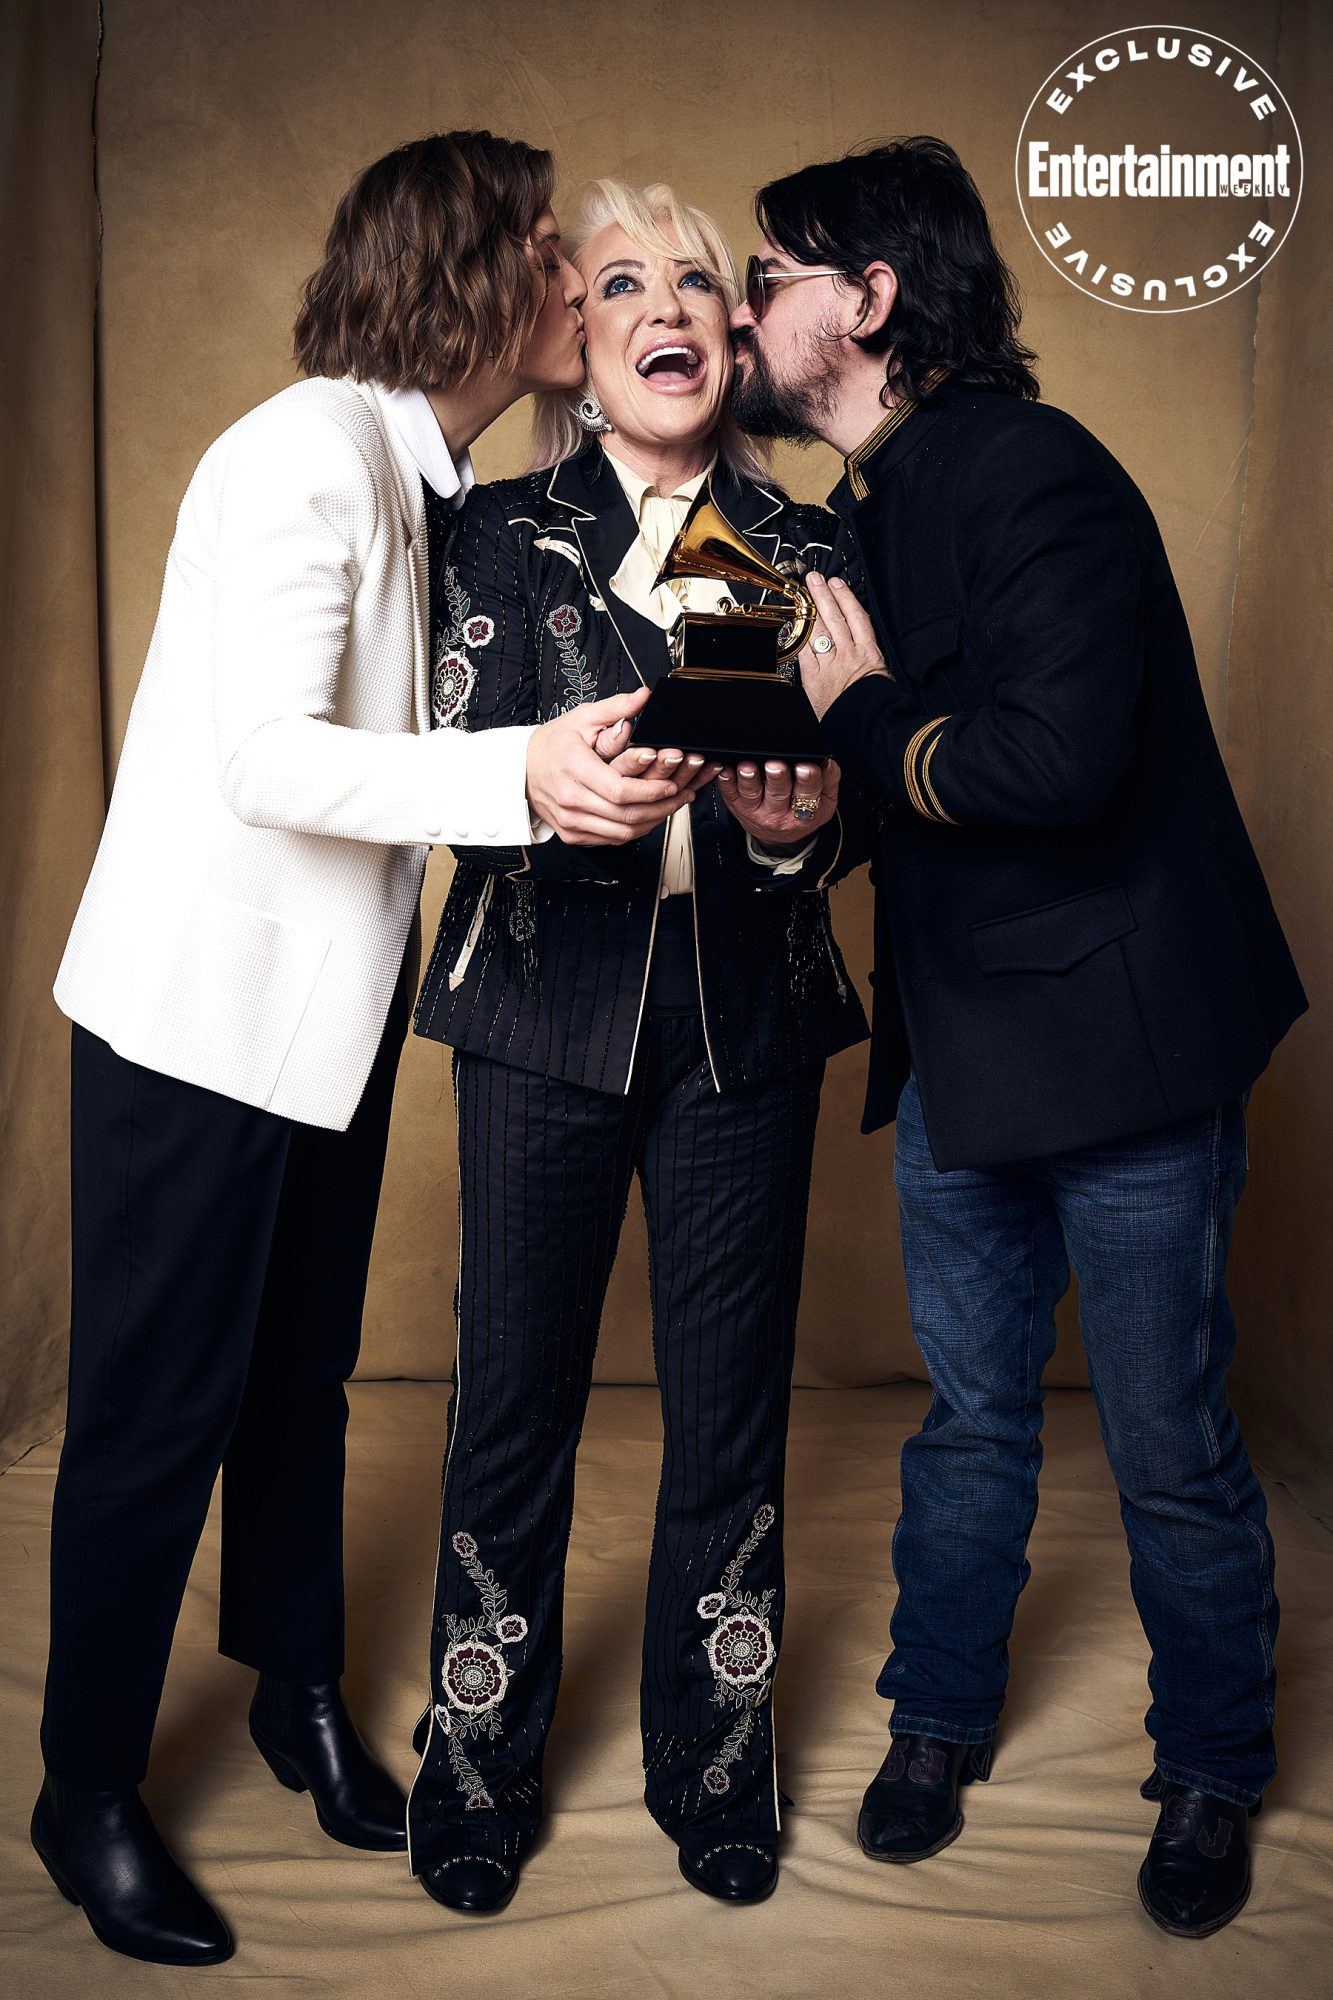 Brandi Carlile, Tanya Tucker, and Shooter Jennings